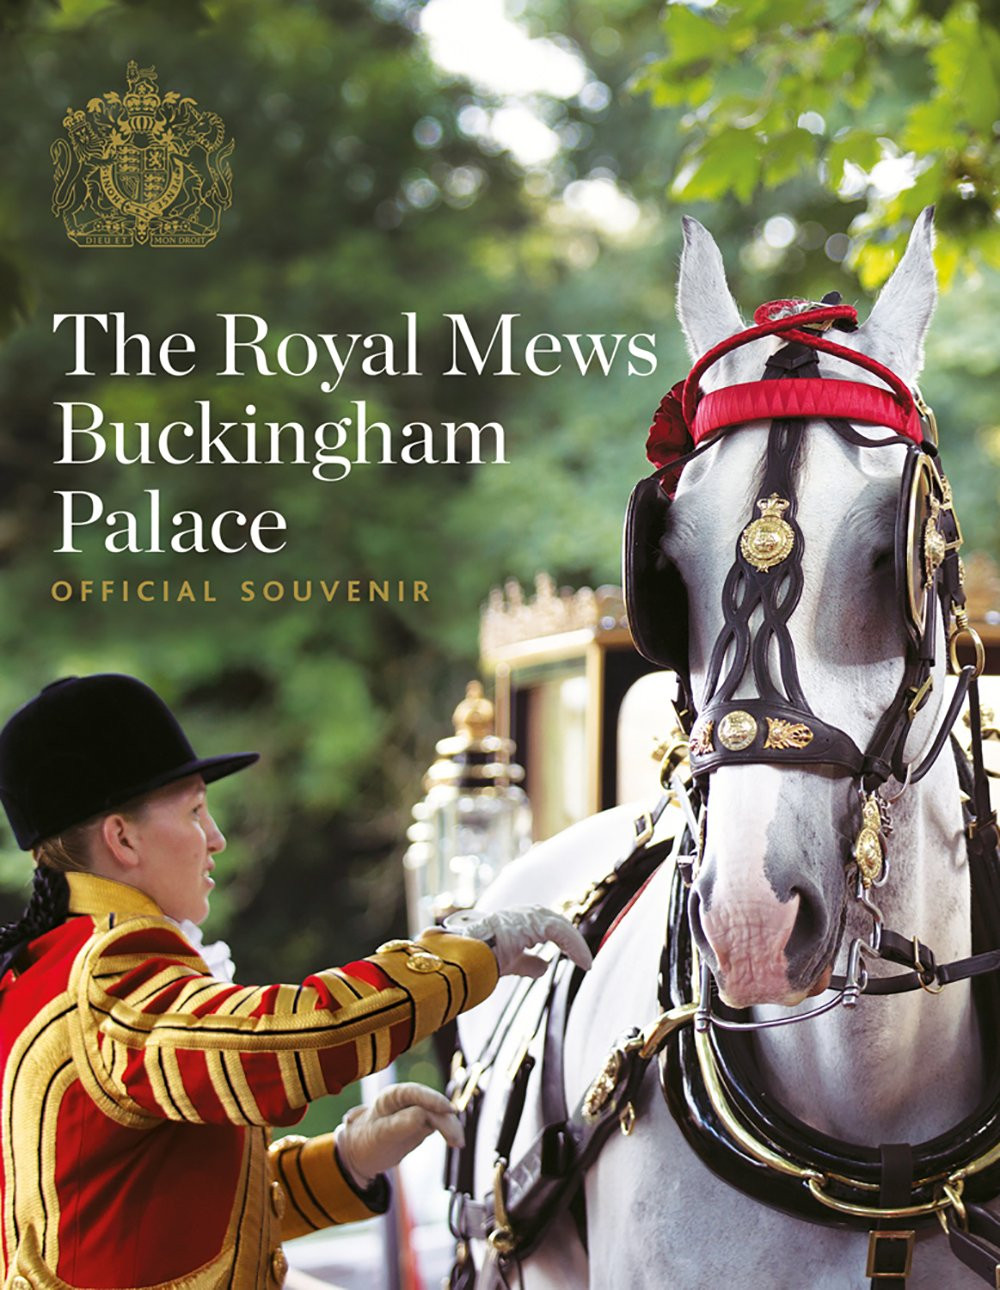 The Royal Mews Buckingham Palace Official souvenir guidebook, at book depository